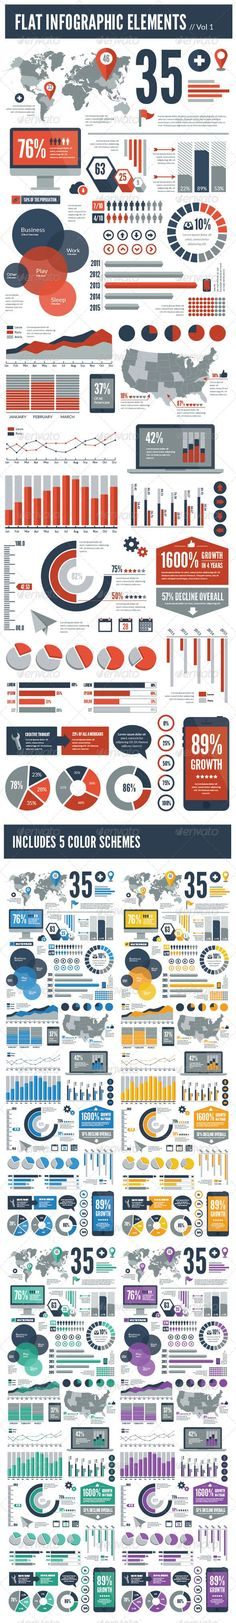 Flat Vector Infographic Elements - Infographics                                                                                                                                                                                 More